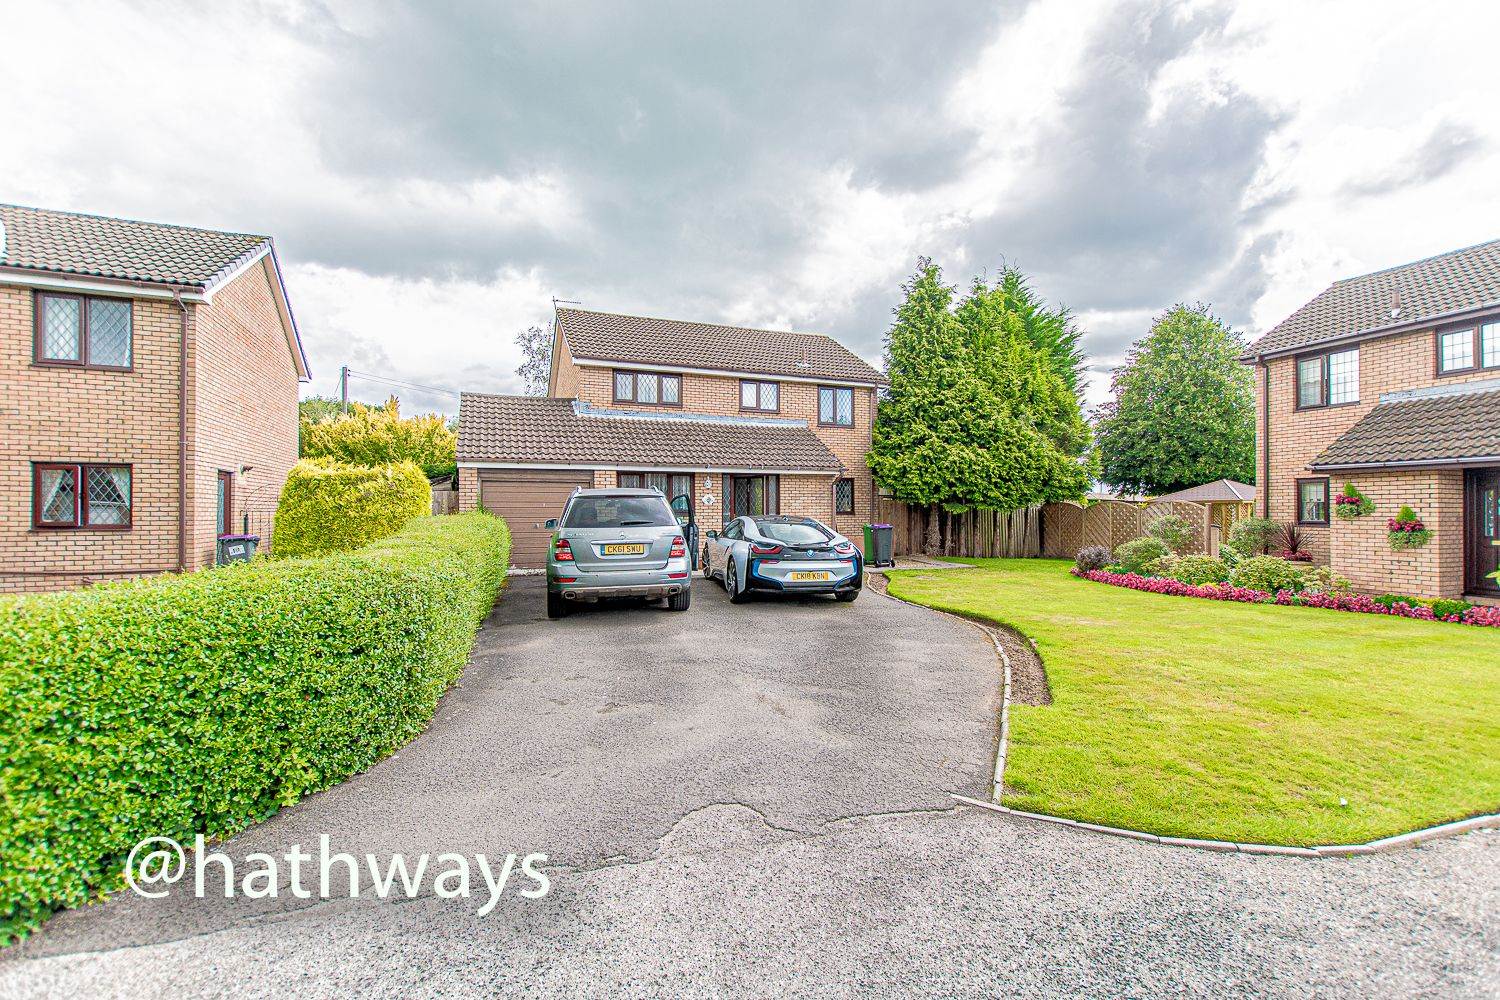 4 bed house for sale in Springfield Close  - Property Image 1